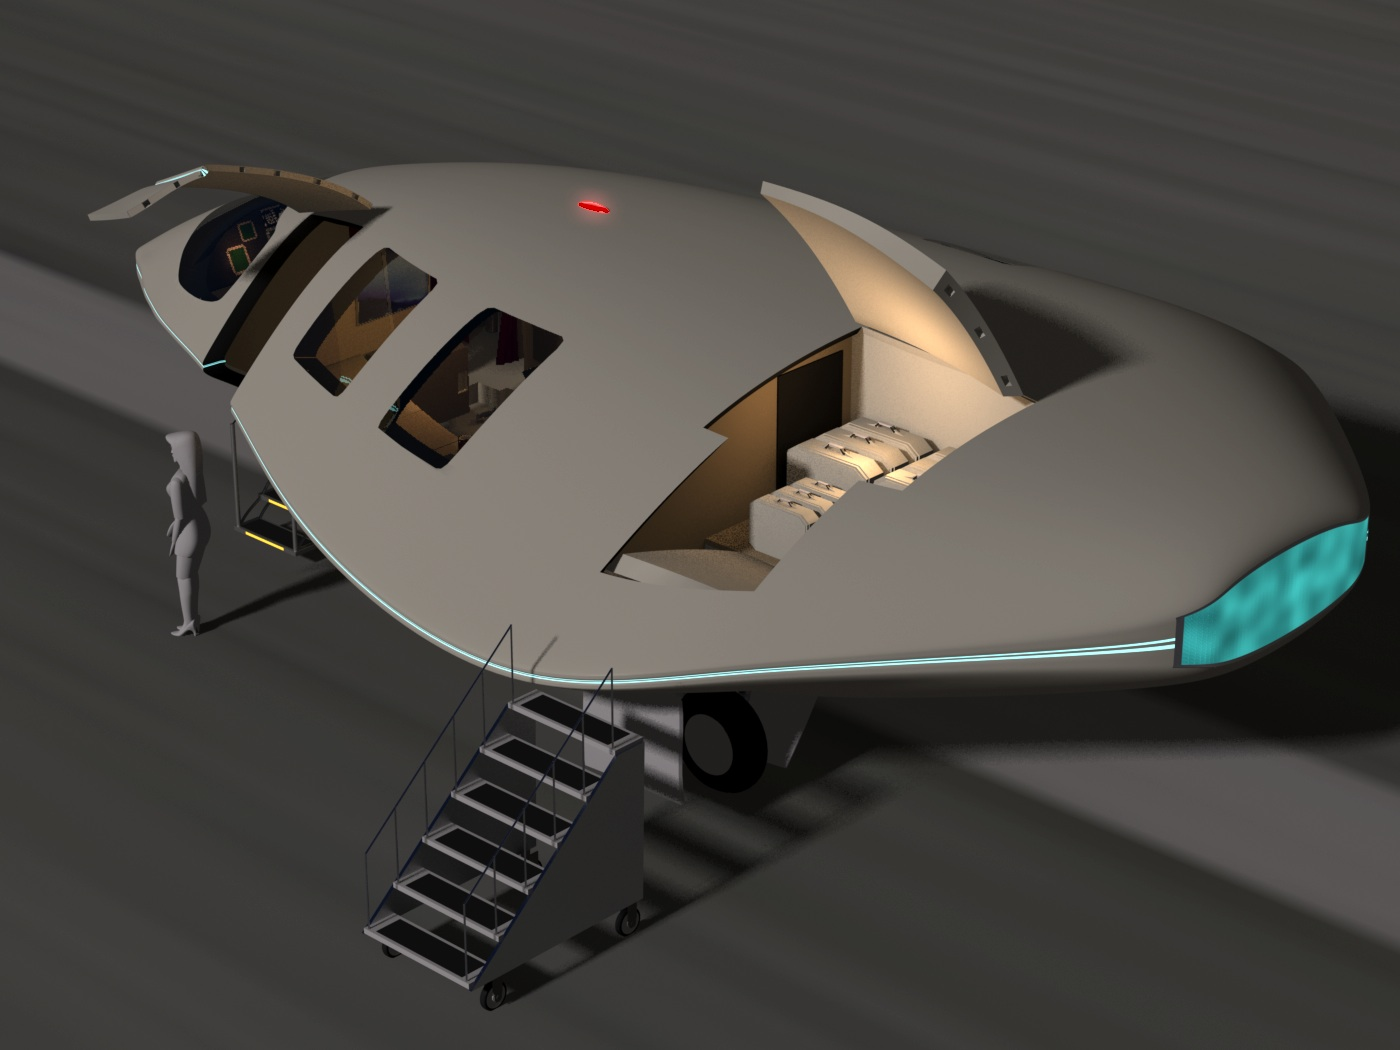 interstellar spacecraft design - photo #8